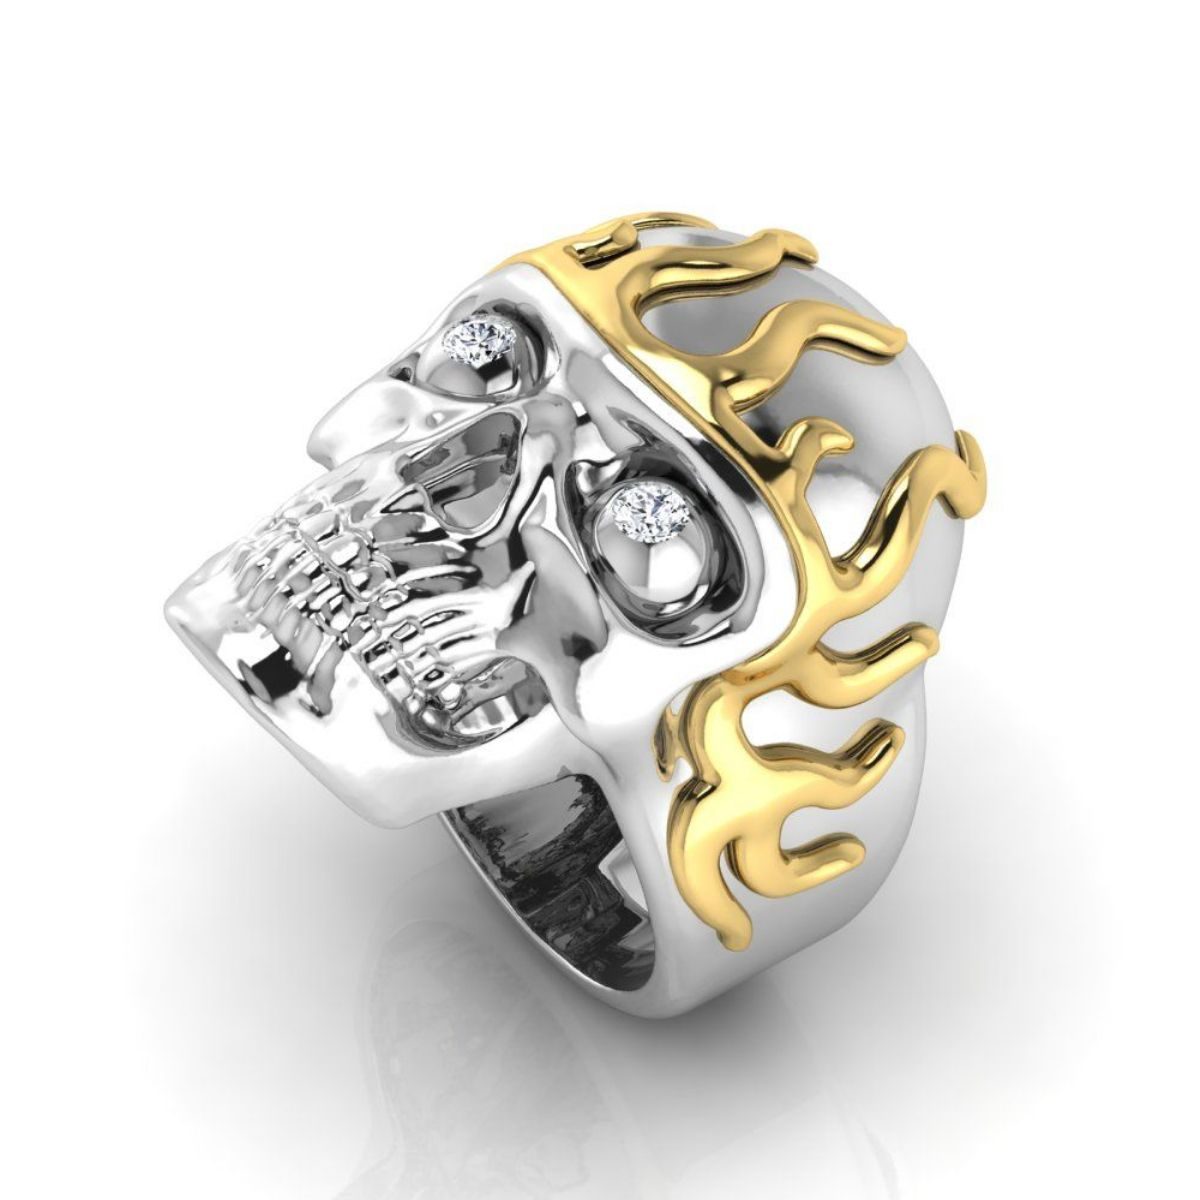 Custom Biker Rings  Design Your Own Motorcycle Club Ring  CustomMade.com